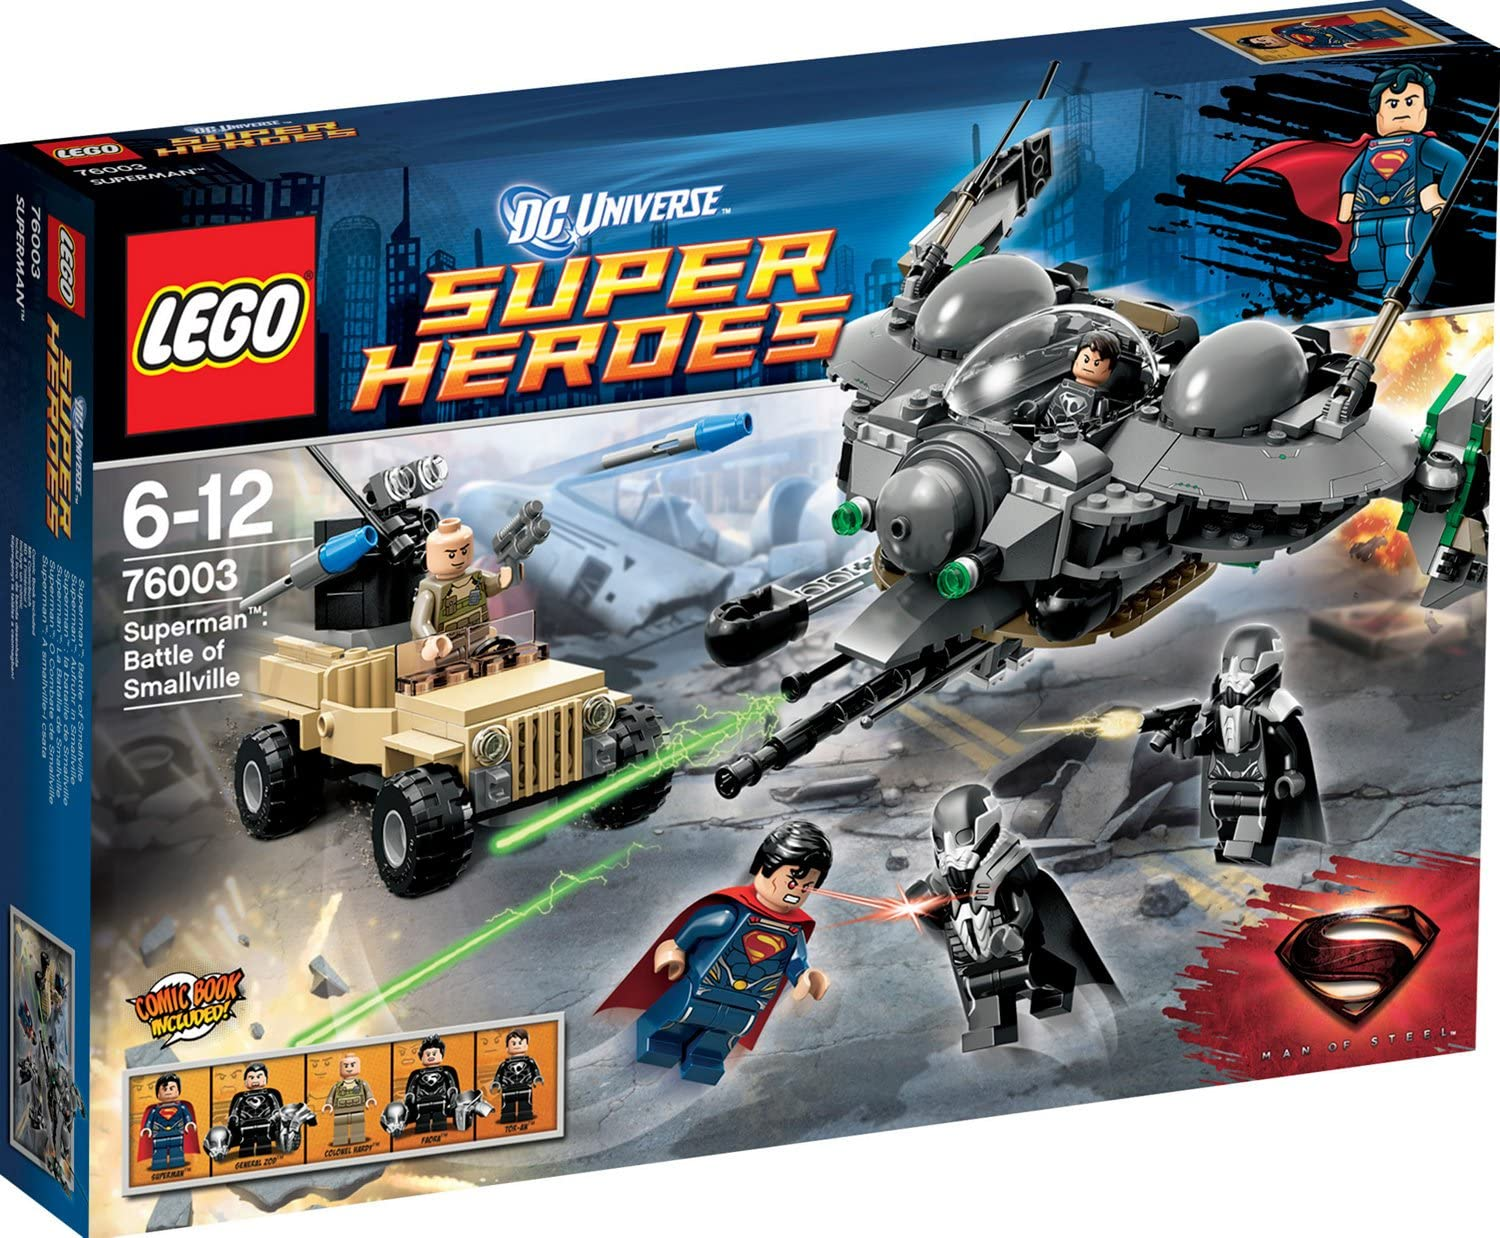 LEGO Super Heroes Superman Battle of Smallville w/ Minifigures | 76003